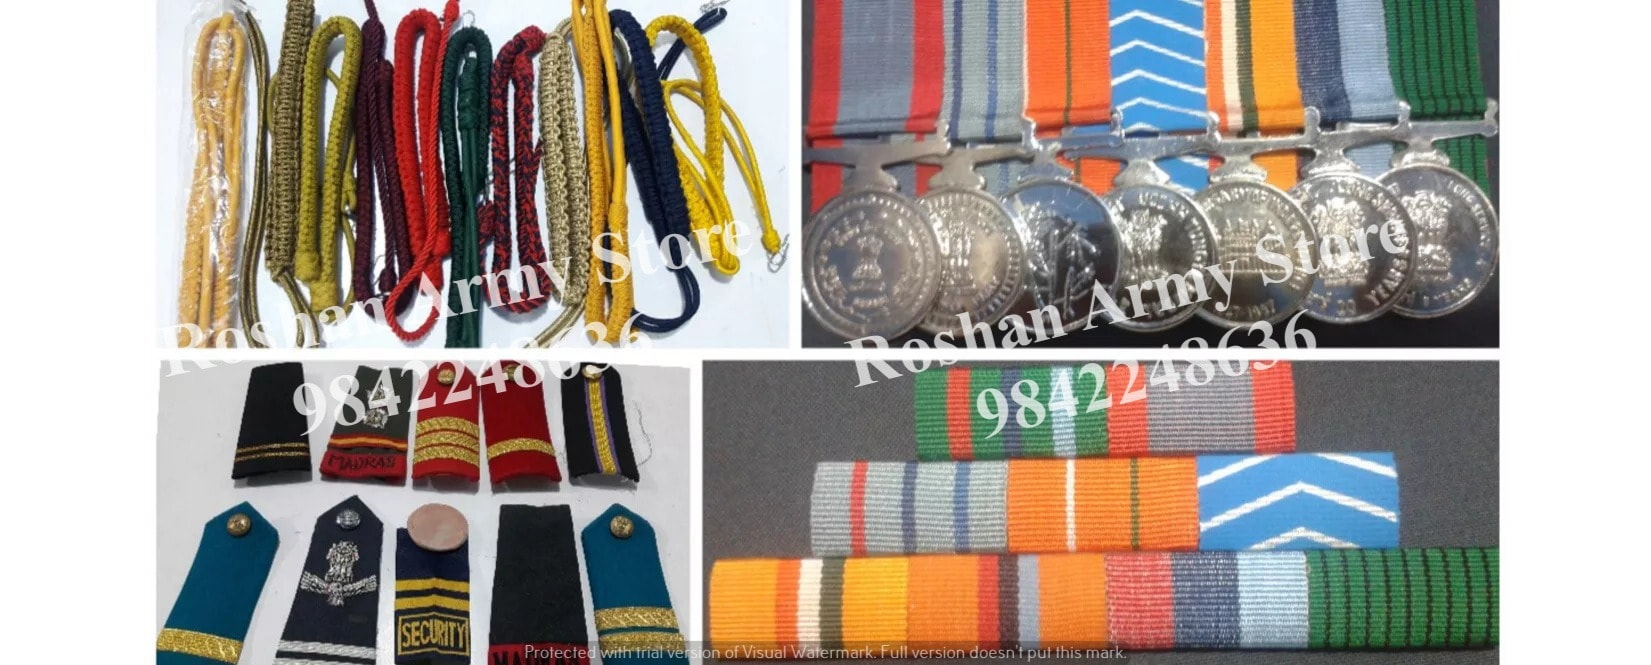 Roshan Army Store - Uniform Manufacturer and Supplier in Puliyakulam, Coimbatore